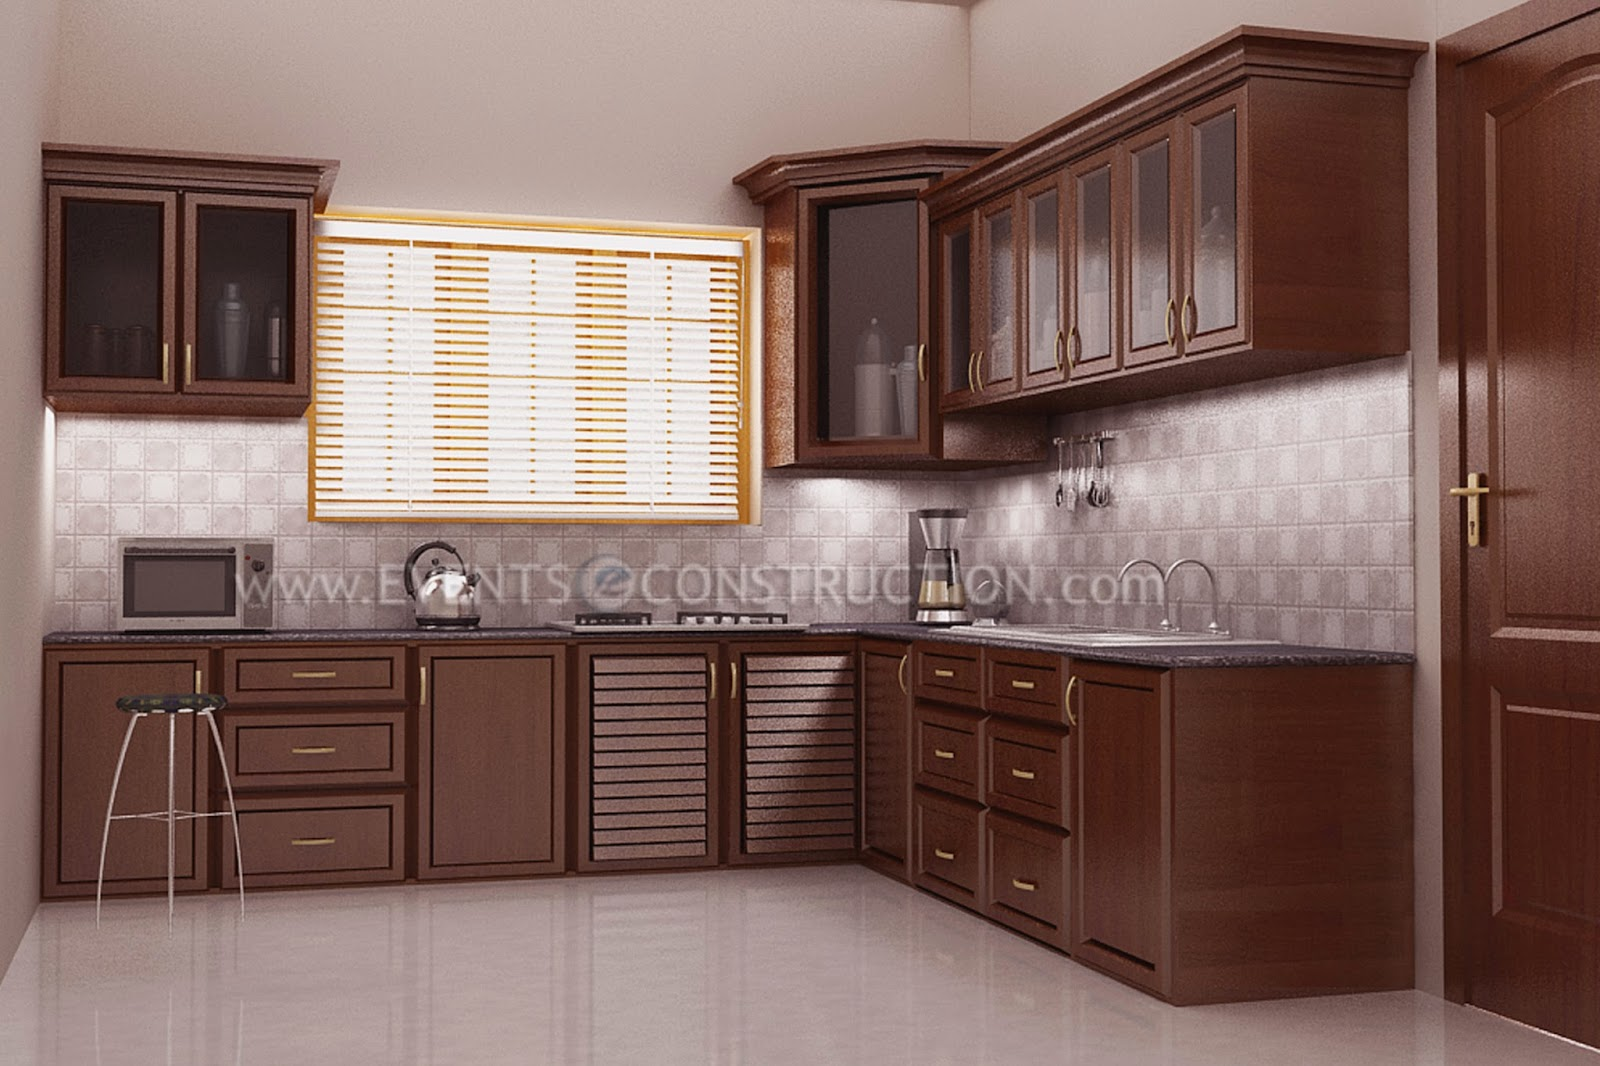 Evens construction pvt ltd kitchen design with wooden for Latest interior design for kitchen